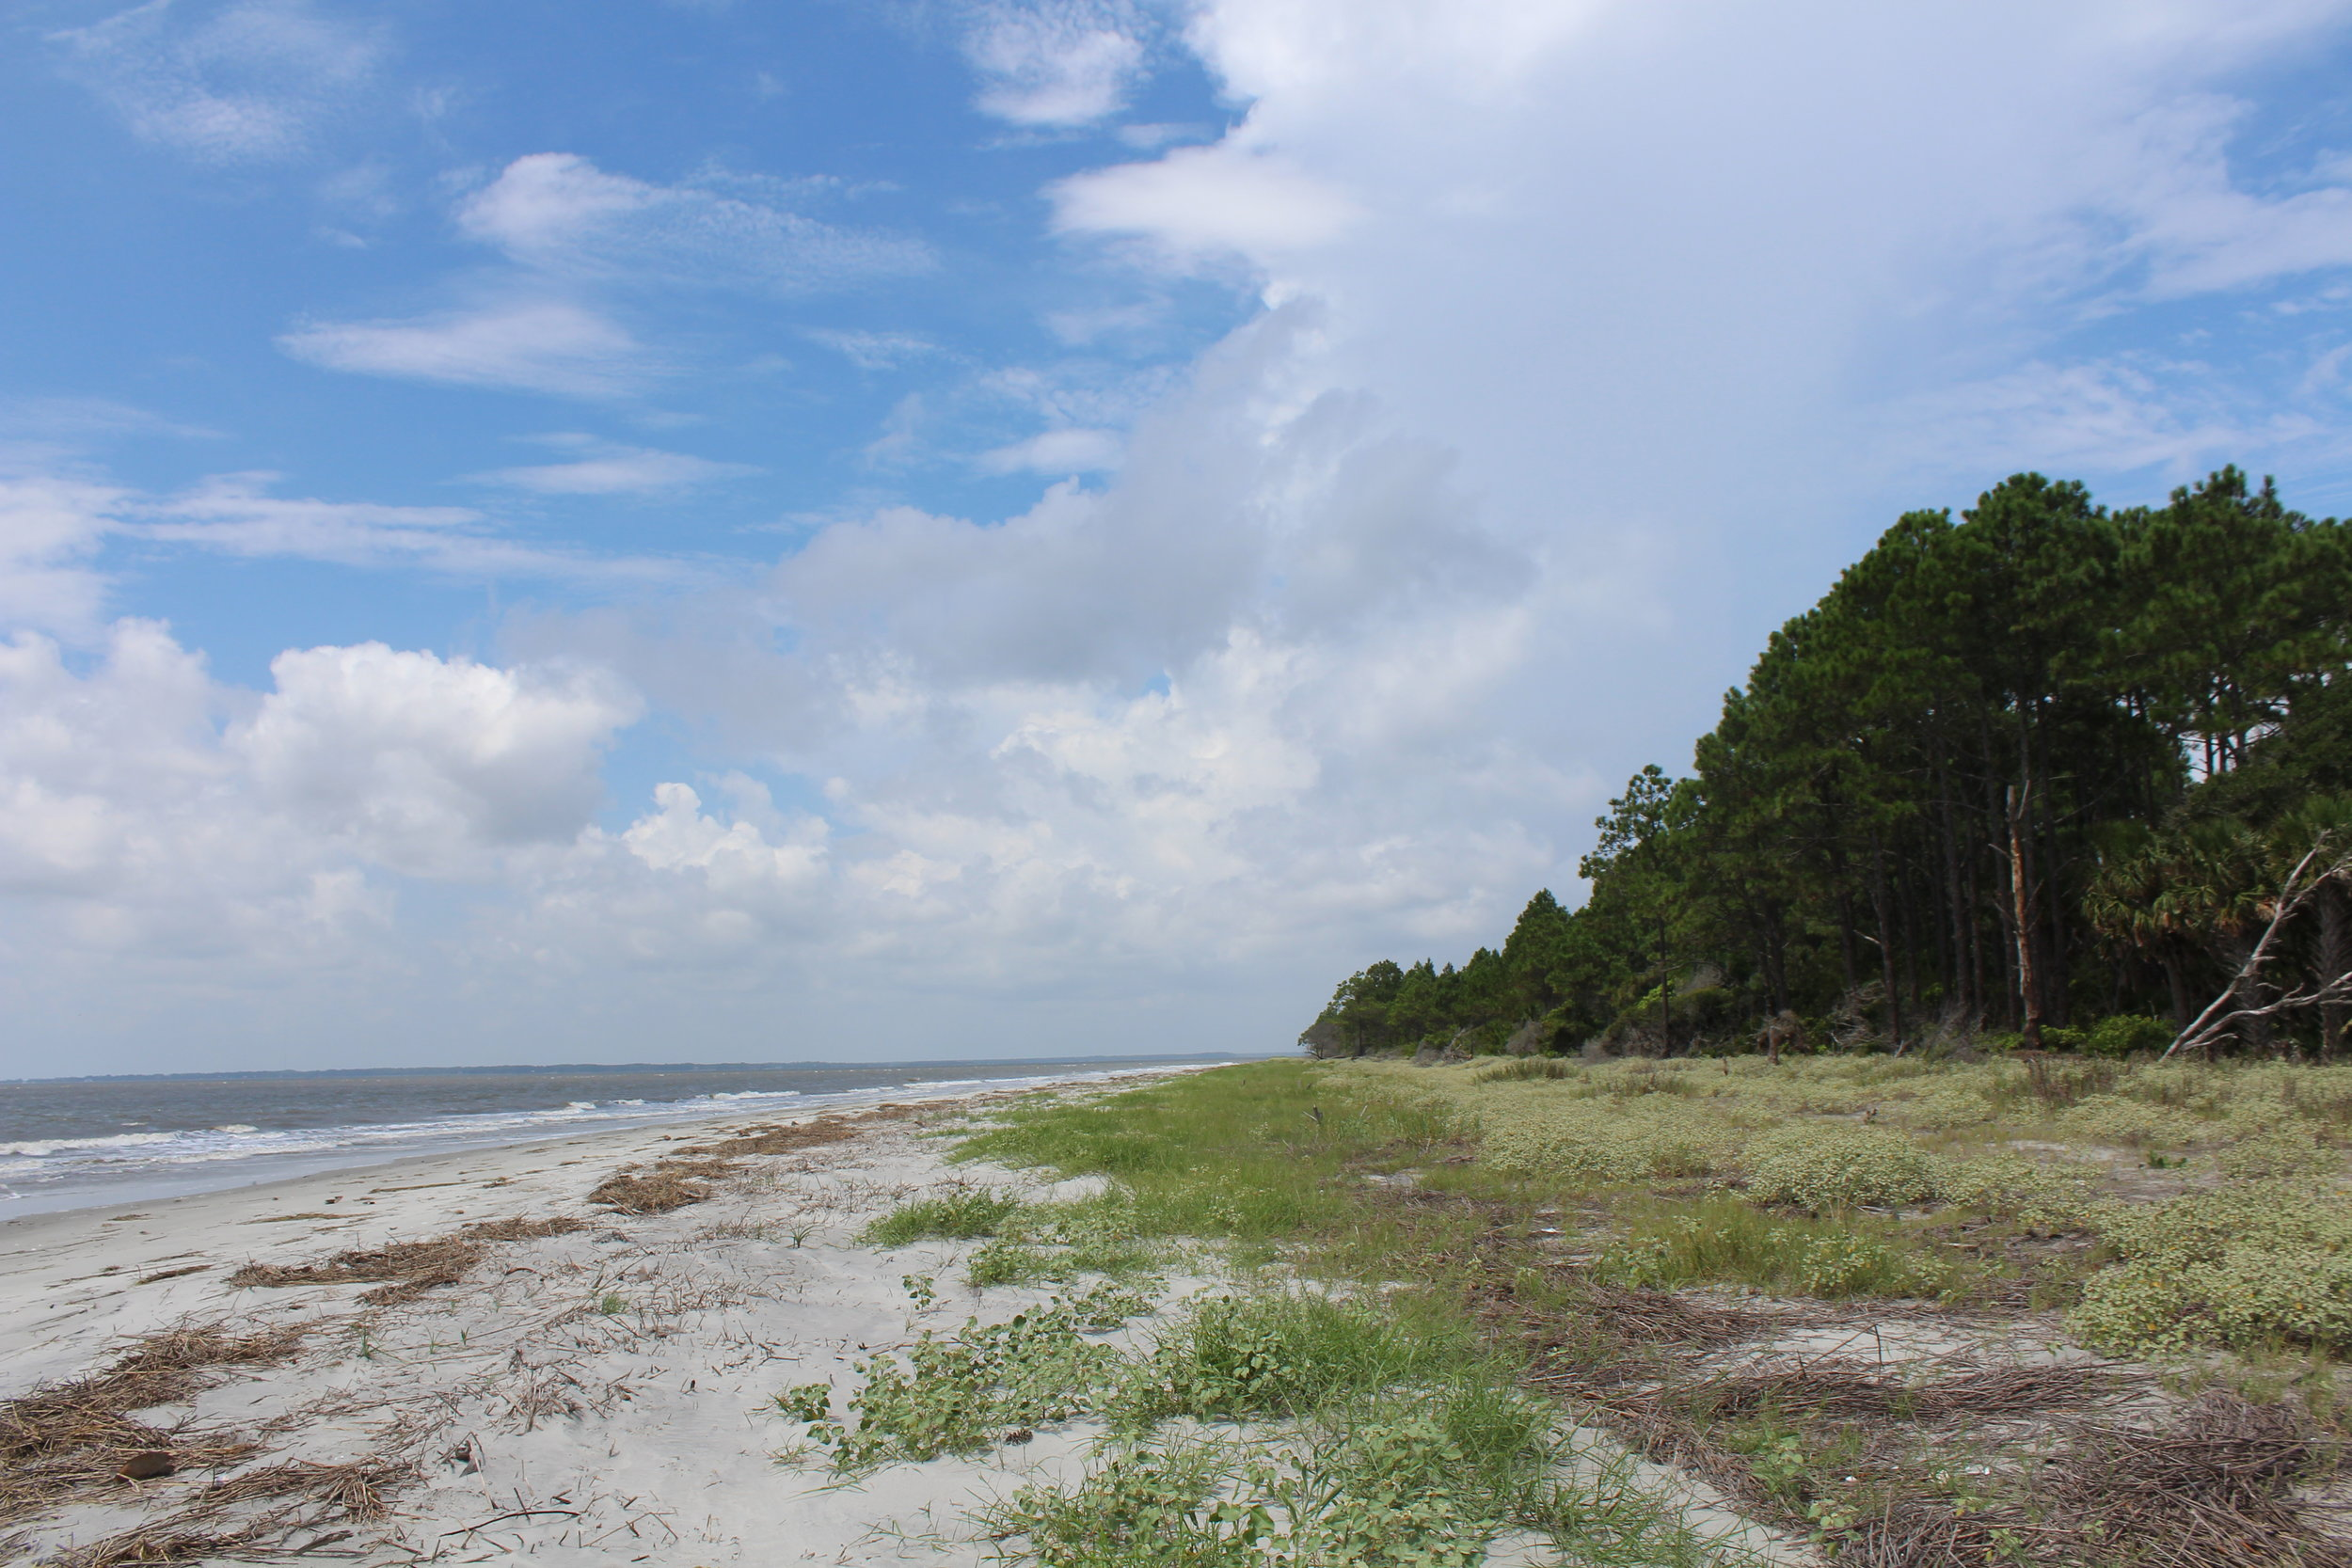 Looking northwest along Otter's beach into the Ashepoo River (Photo: E. Weeks/SCDNR)